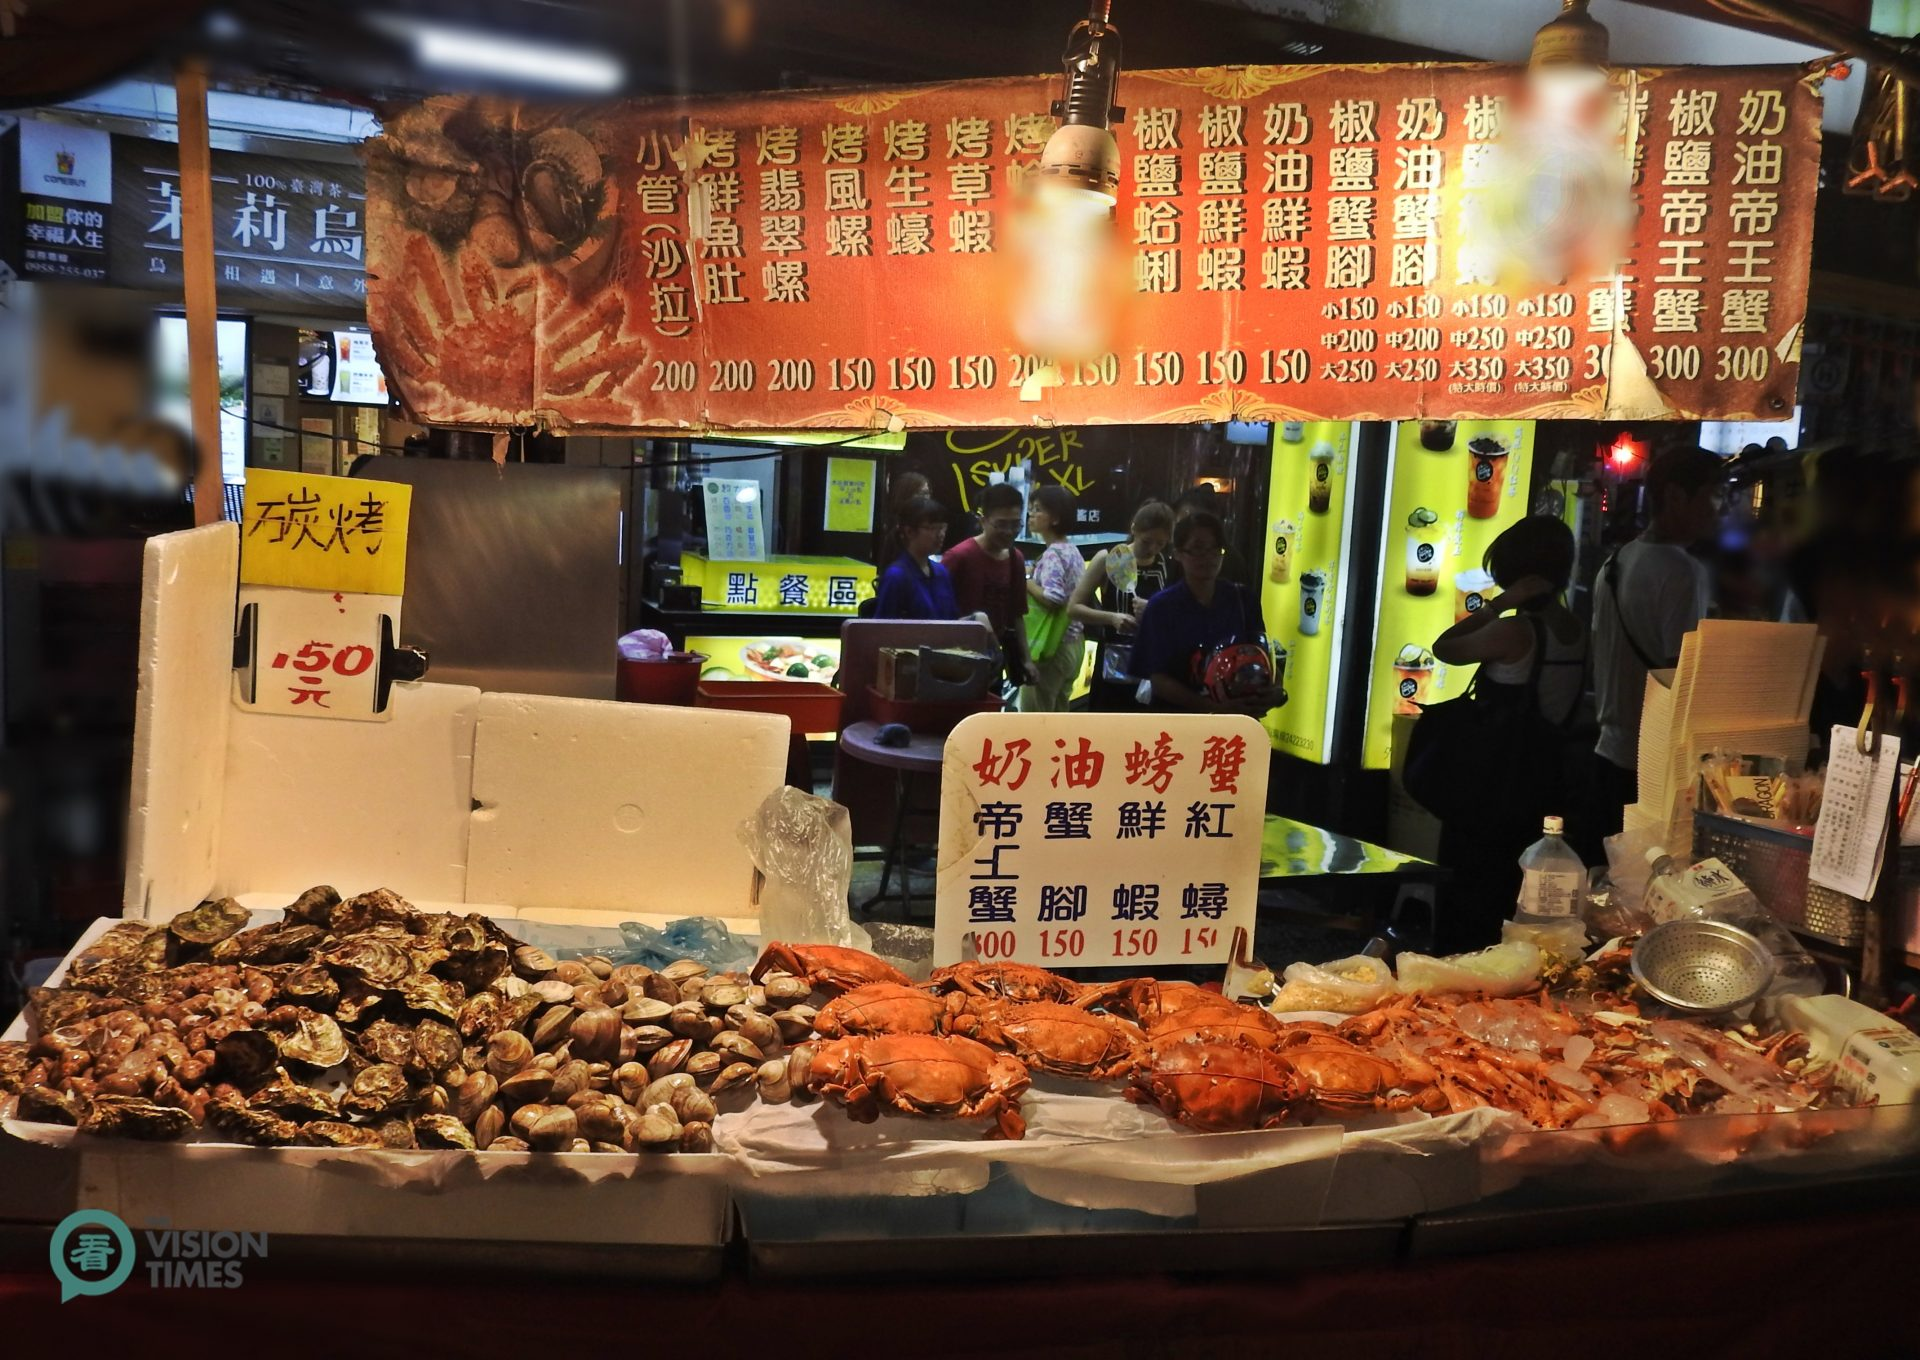 A popular food stall at the Keelung Night Market in northern Taiwan. (Image: Billy Shyu / Vision Times)